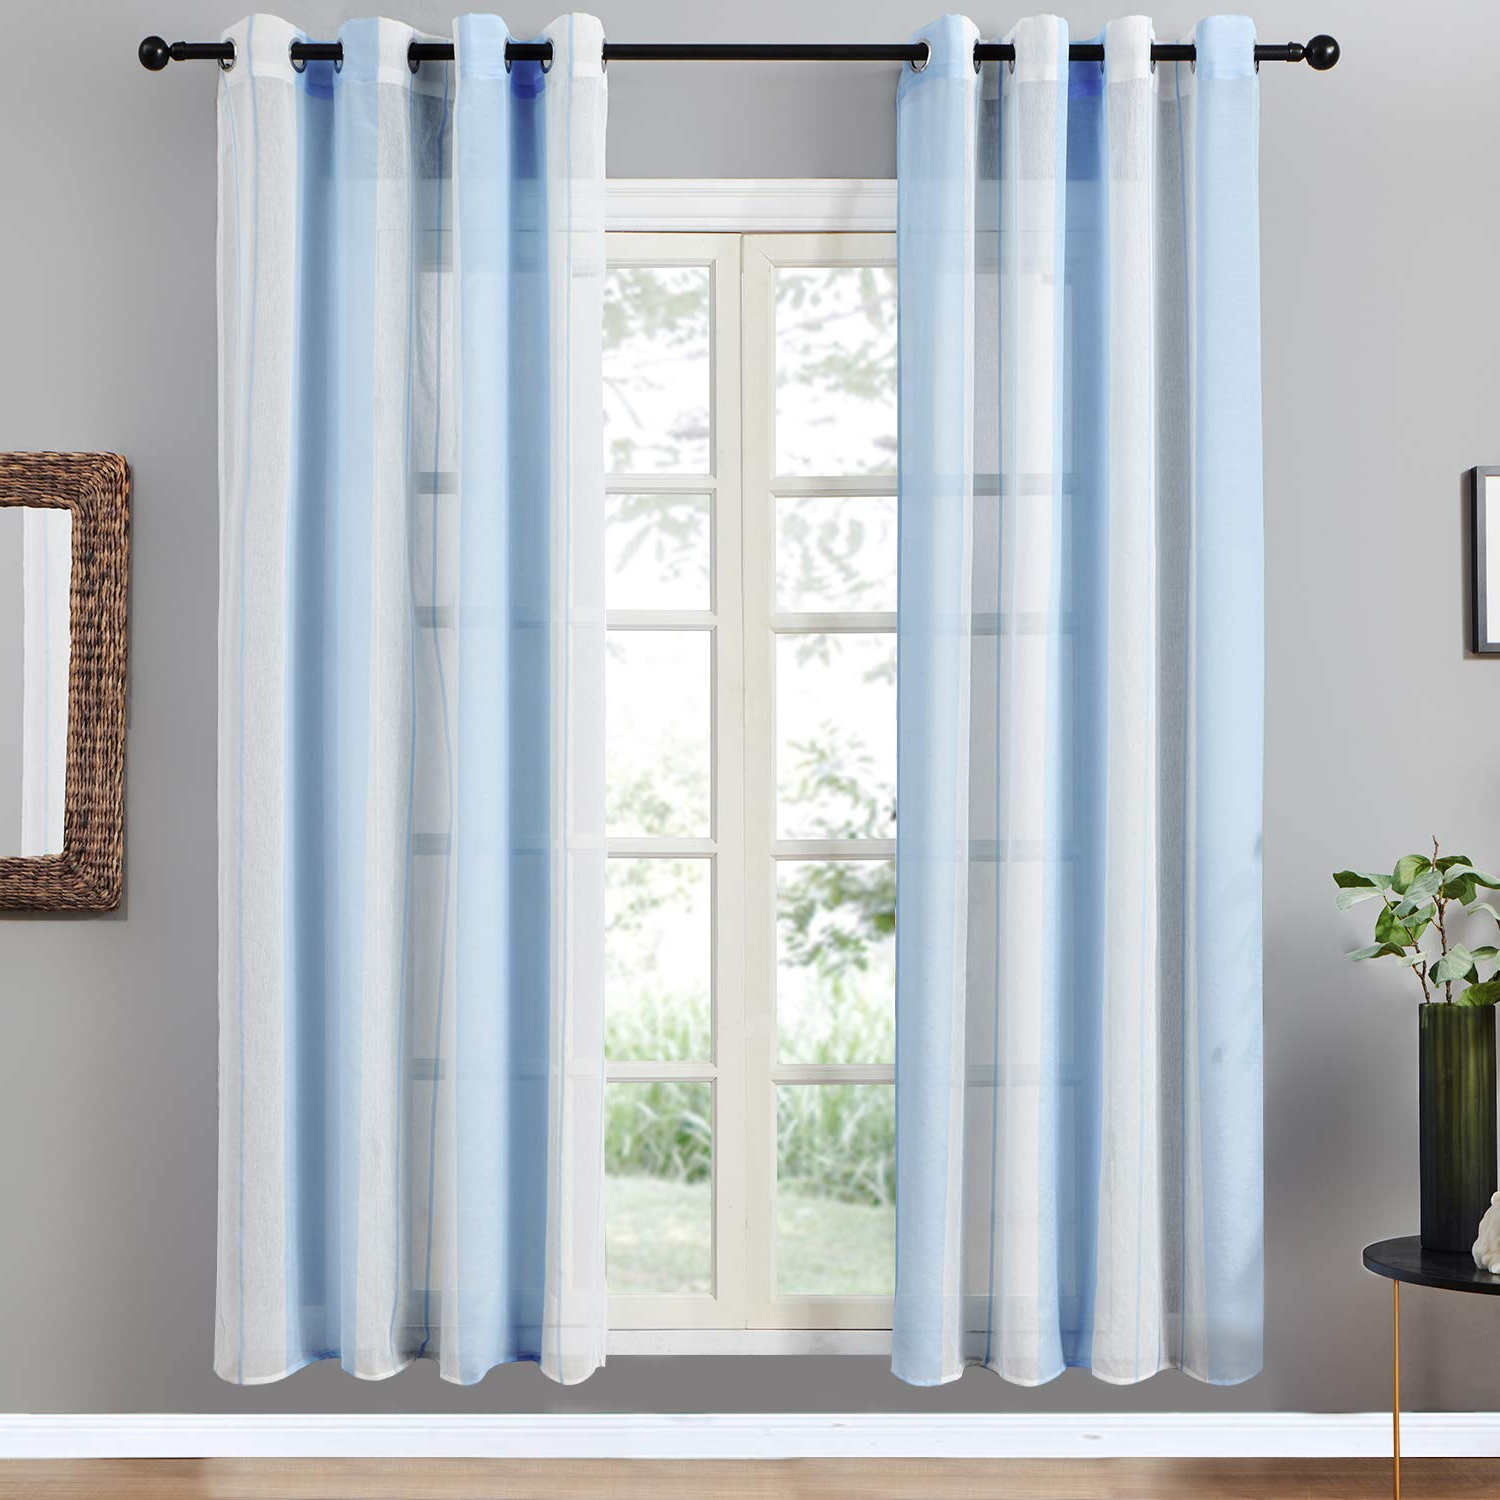 Most Current Top Finel Sheer Curtains 84 Inches Long For Bedroom Living Room Blue  Vertical Striped Grommet Yarn Dyed Window Curtains, 2 Panels With Ombre Stripe Yarn Dyed Cotton Window Curtain Panel Pairs (Gallery 6 of 20)